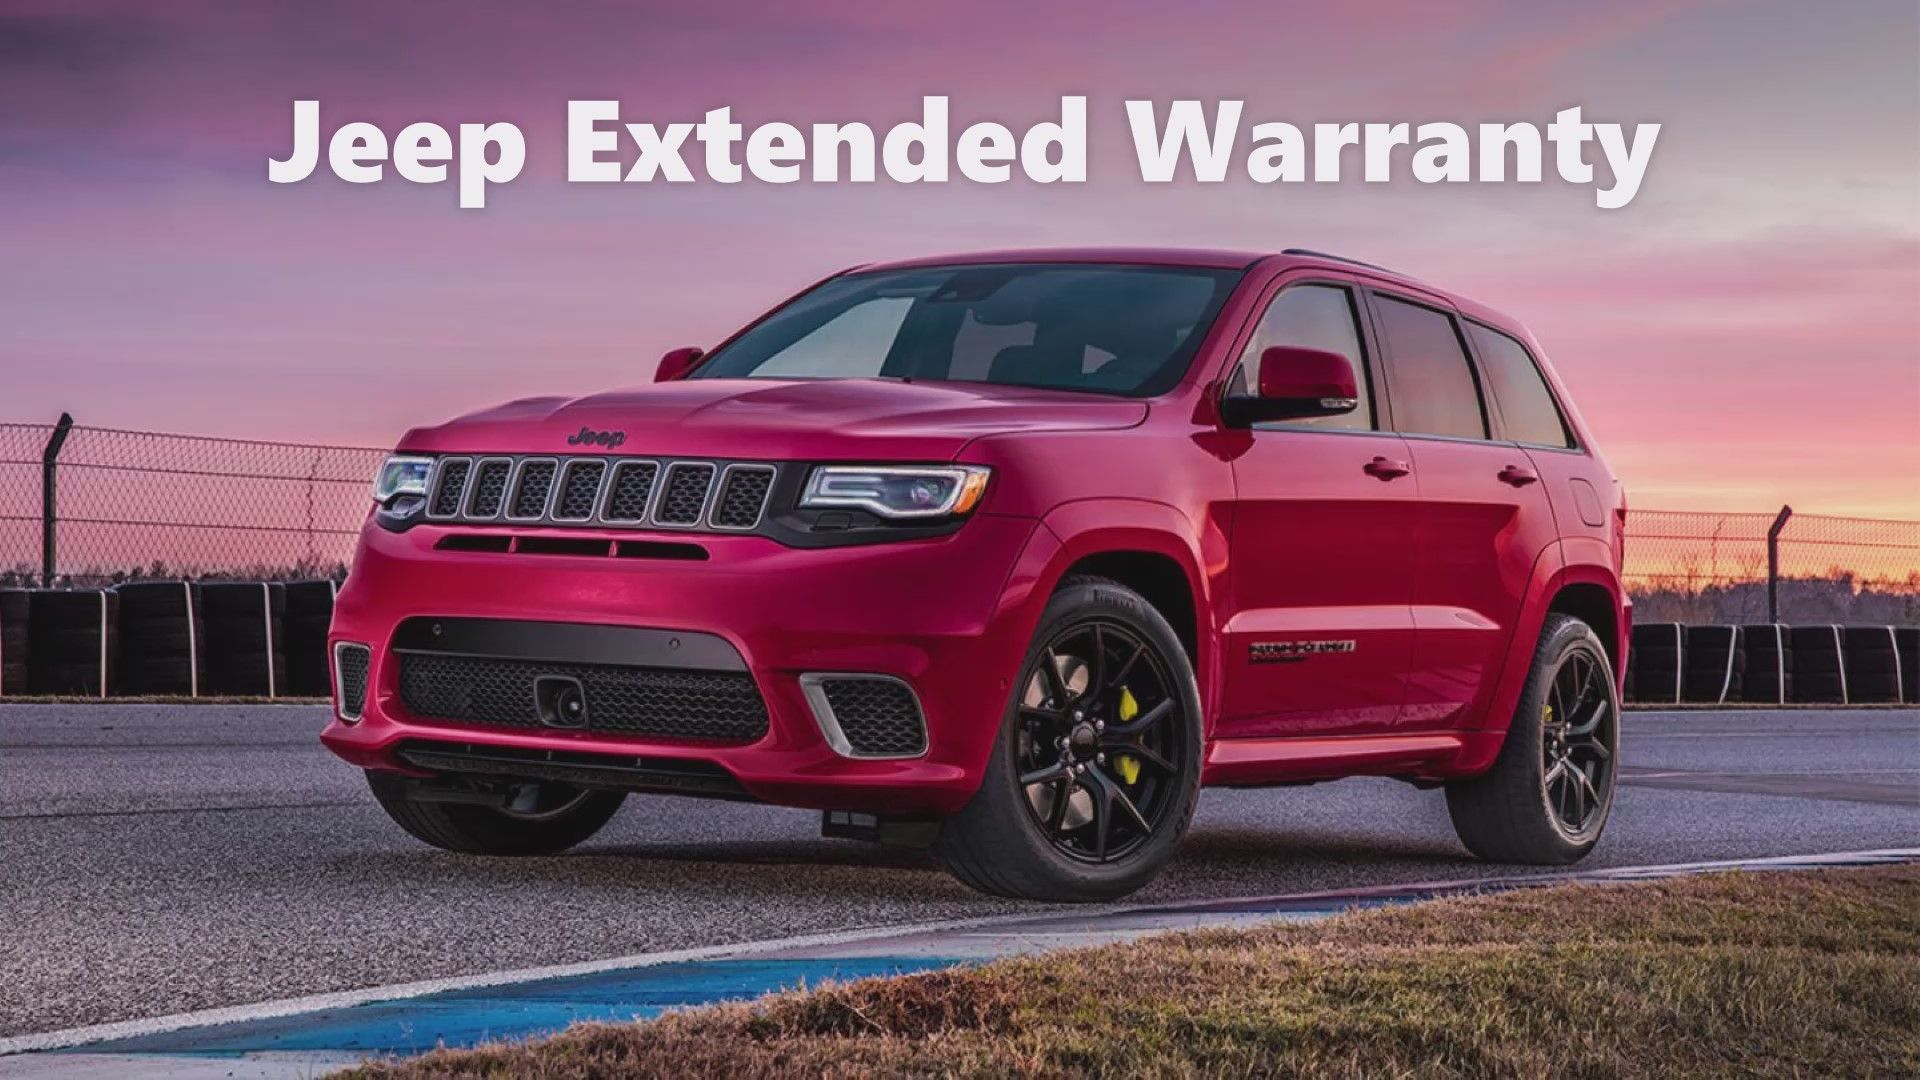 Jeep Extended Warranty Has Many Great Products Such As The Maximum